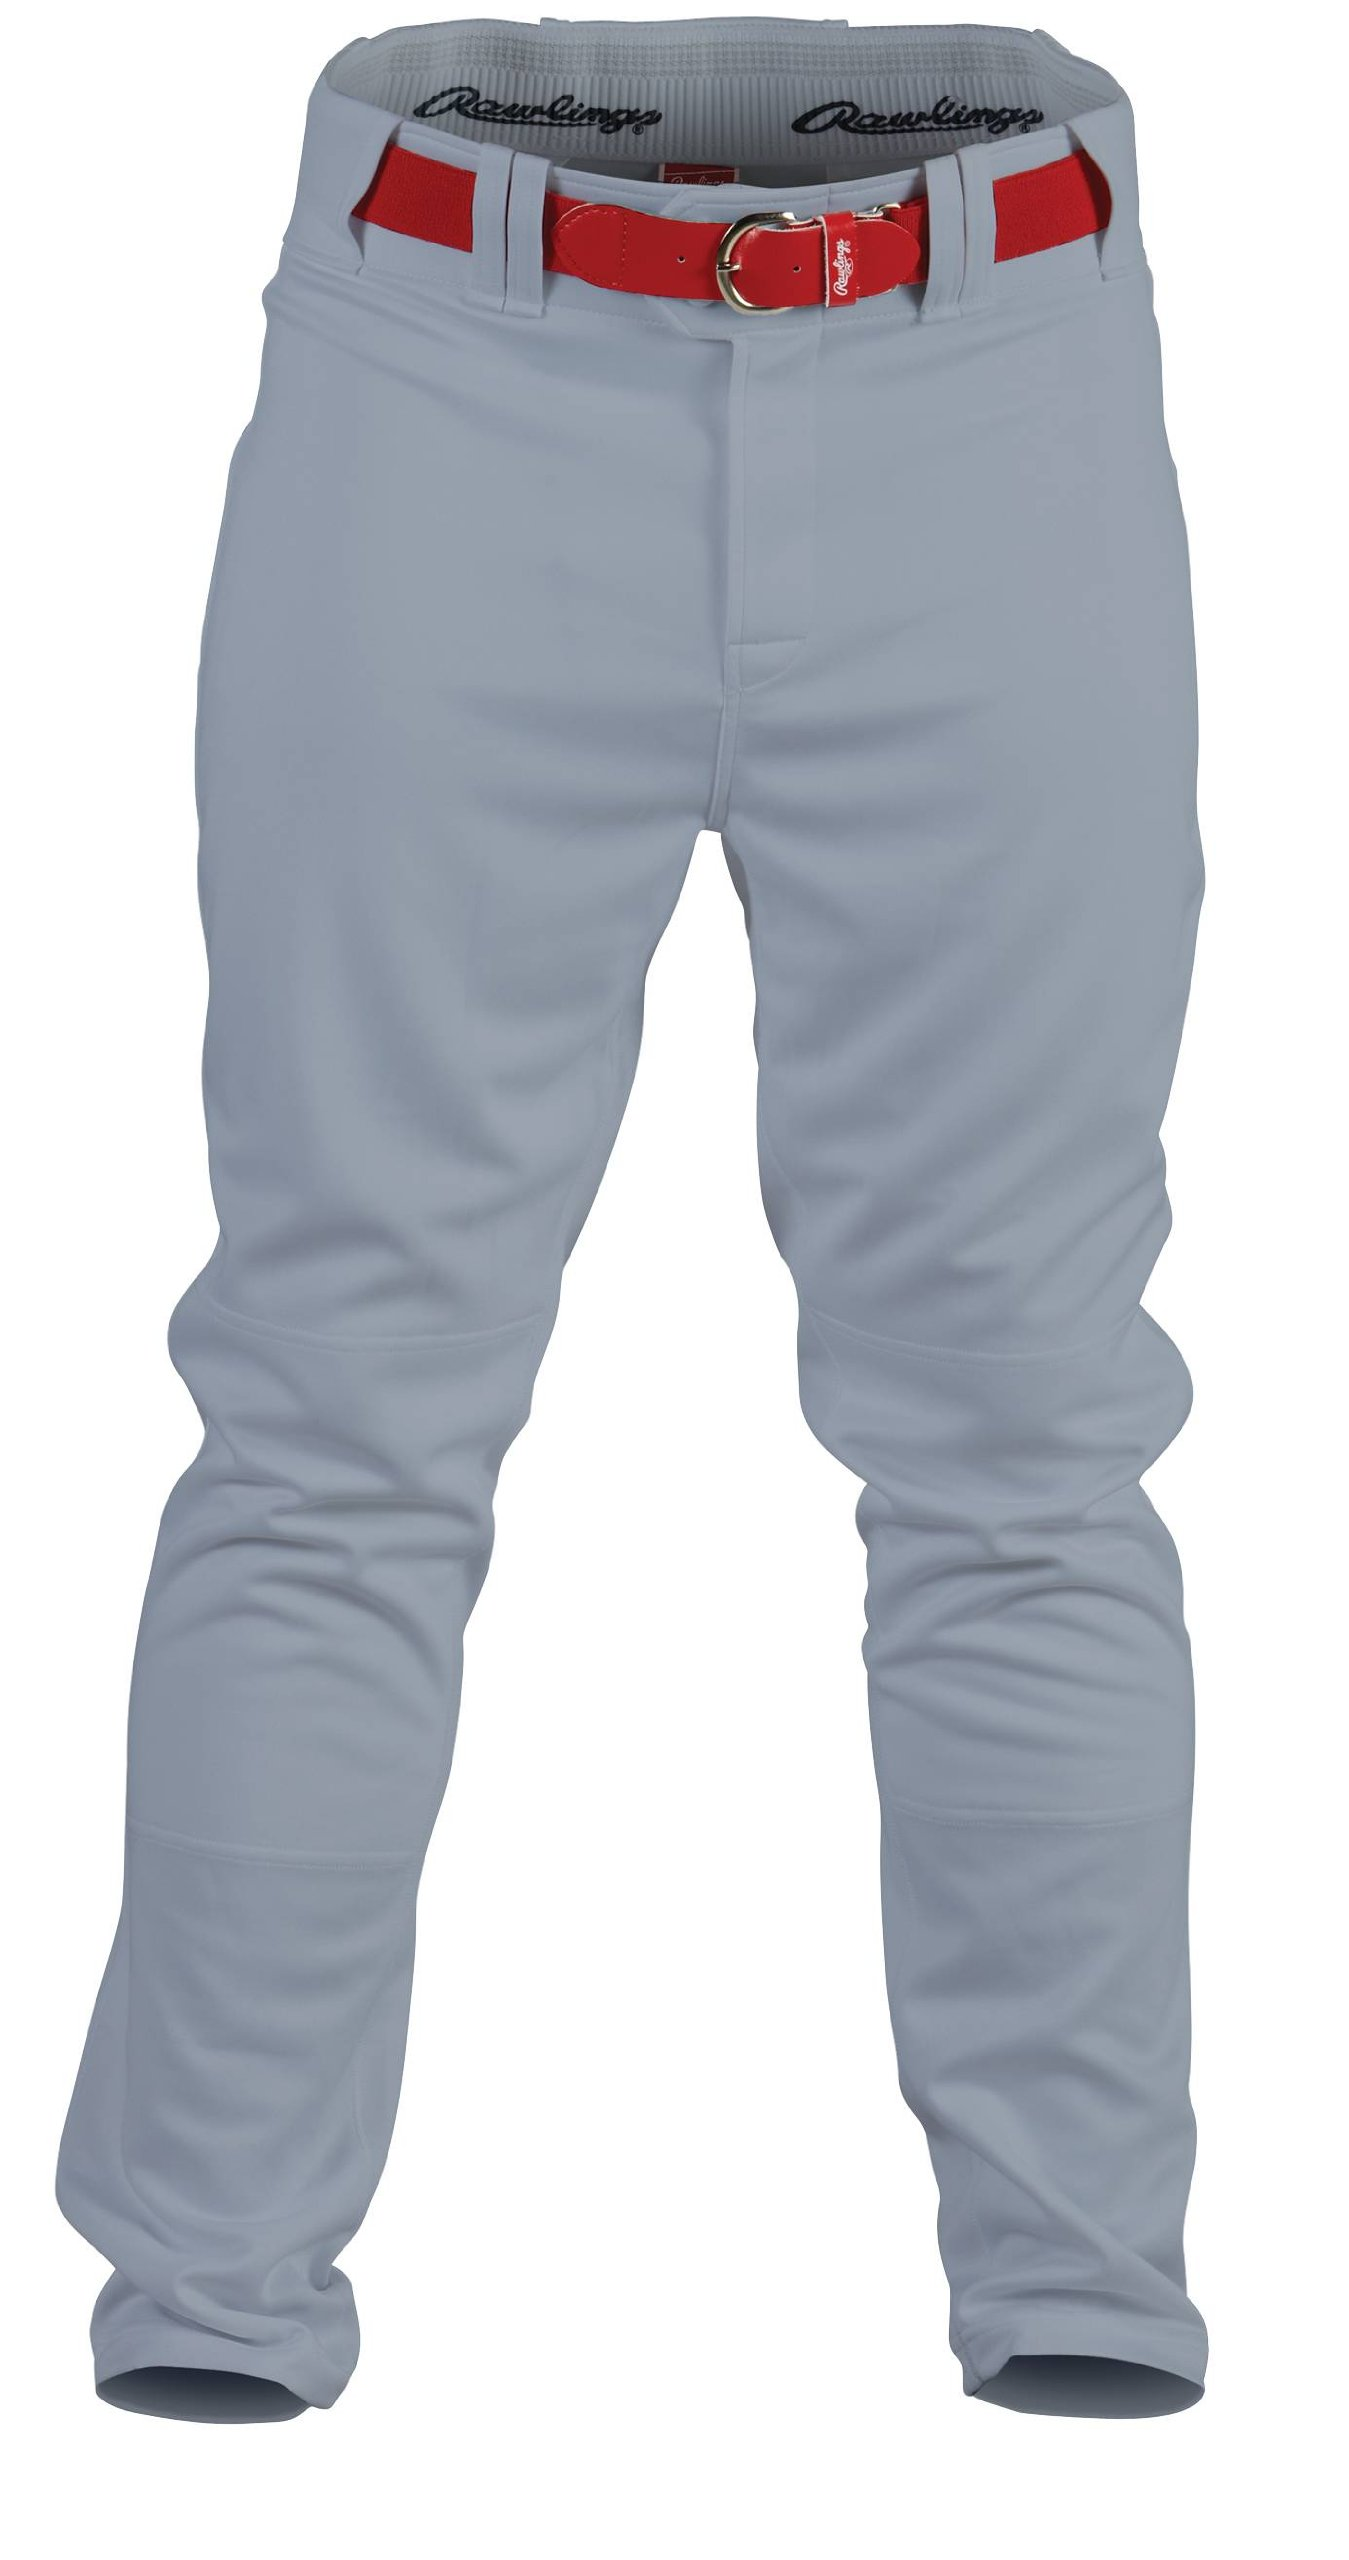 Rawlings Youth Baseball Pant (Blue Grey, X-Large) by Rawlings